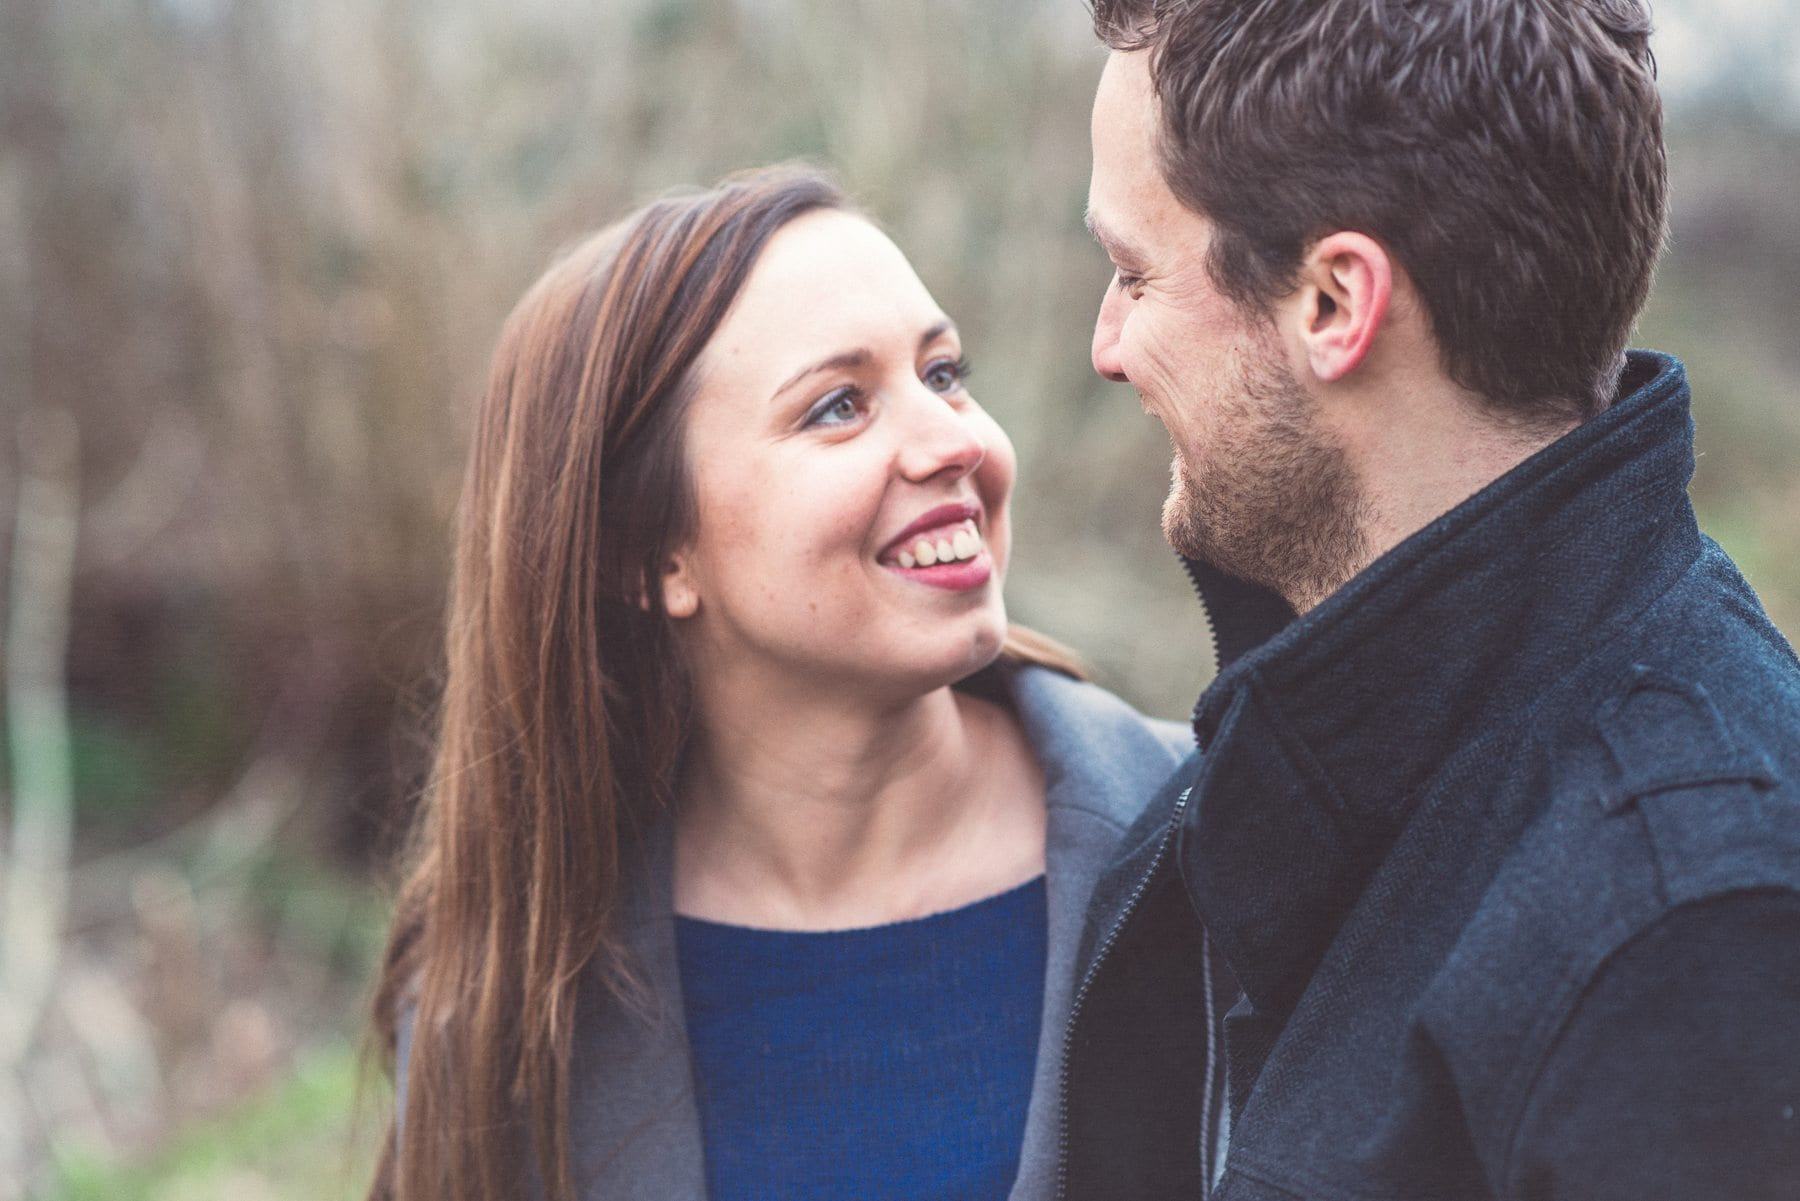 Winter engagement shoot by Best Film photographer Maria Assia Photography